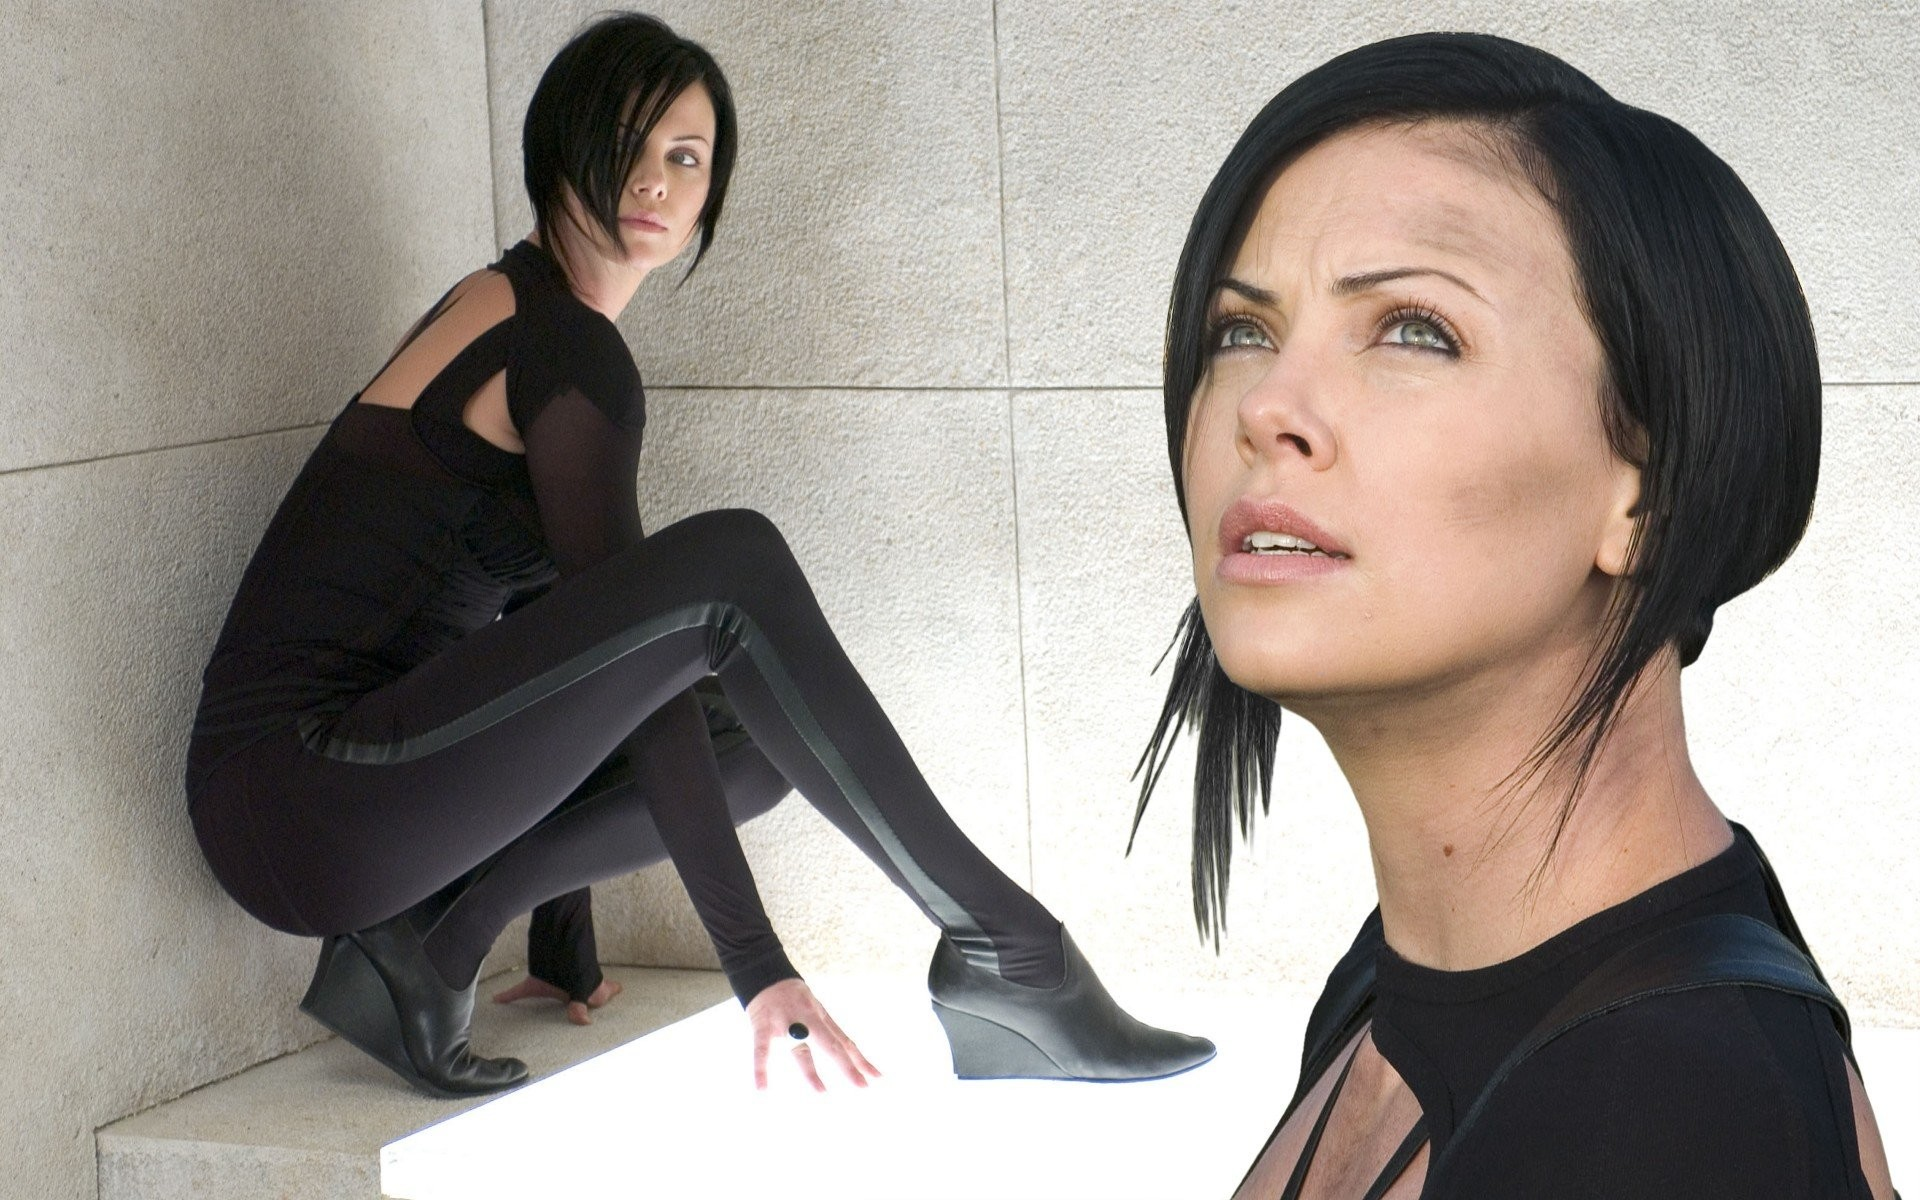 Res: 1920x1200, charlize theron aeon flux haircut